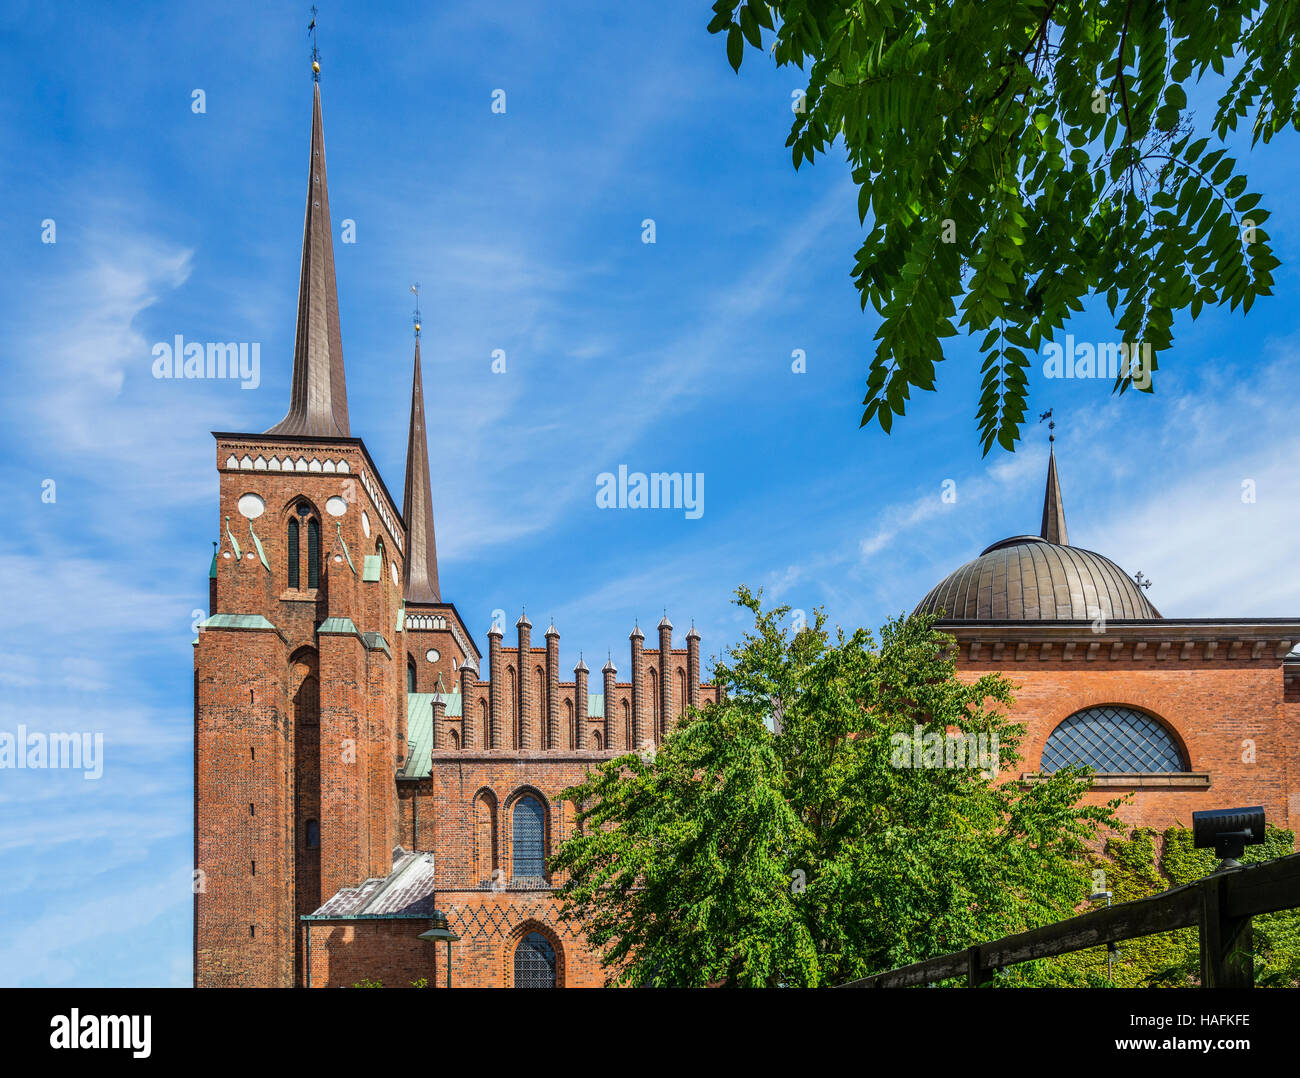 Denmark, Zealand, Roskilde, view of the Brick Gothic Roskilde Cathedral (Roskilde Domkirke) - Stock Image